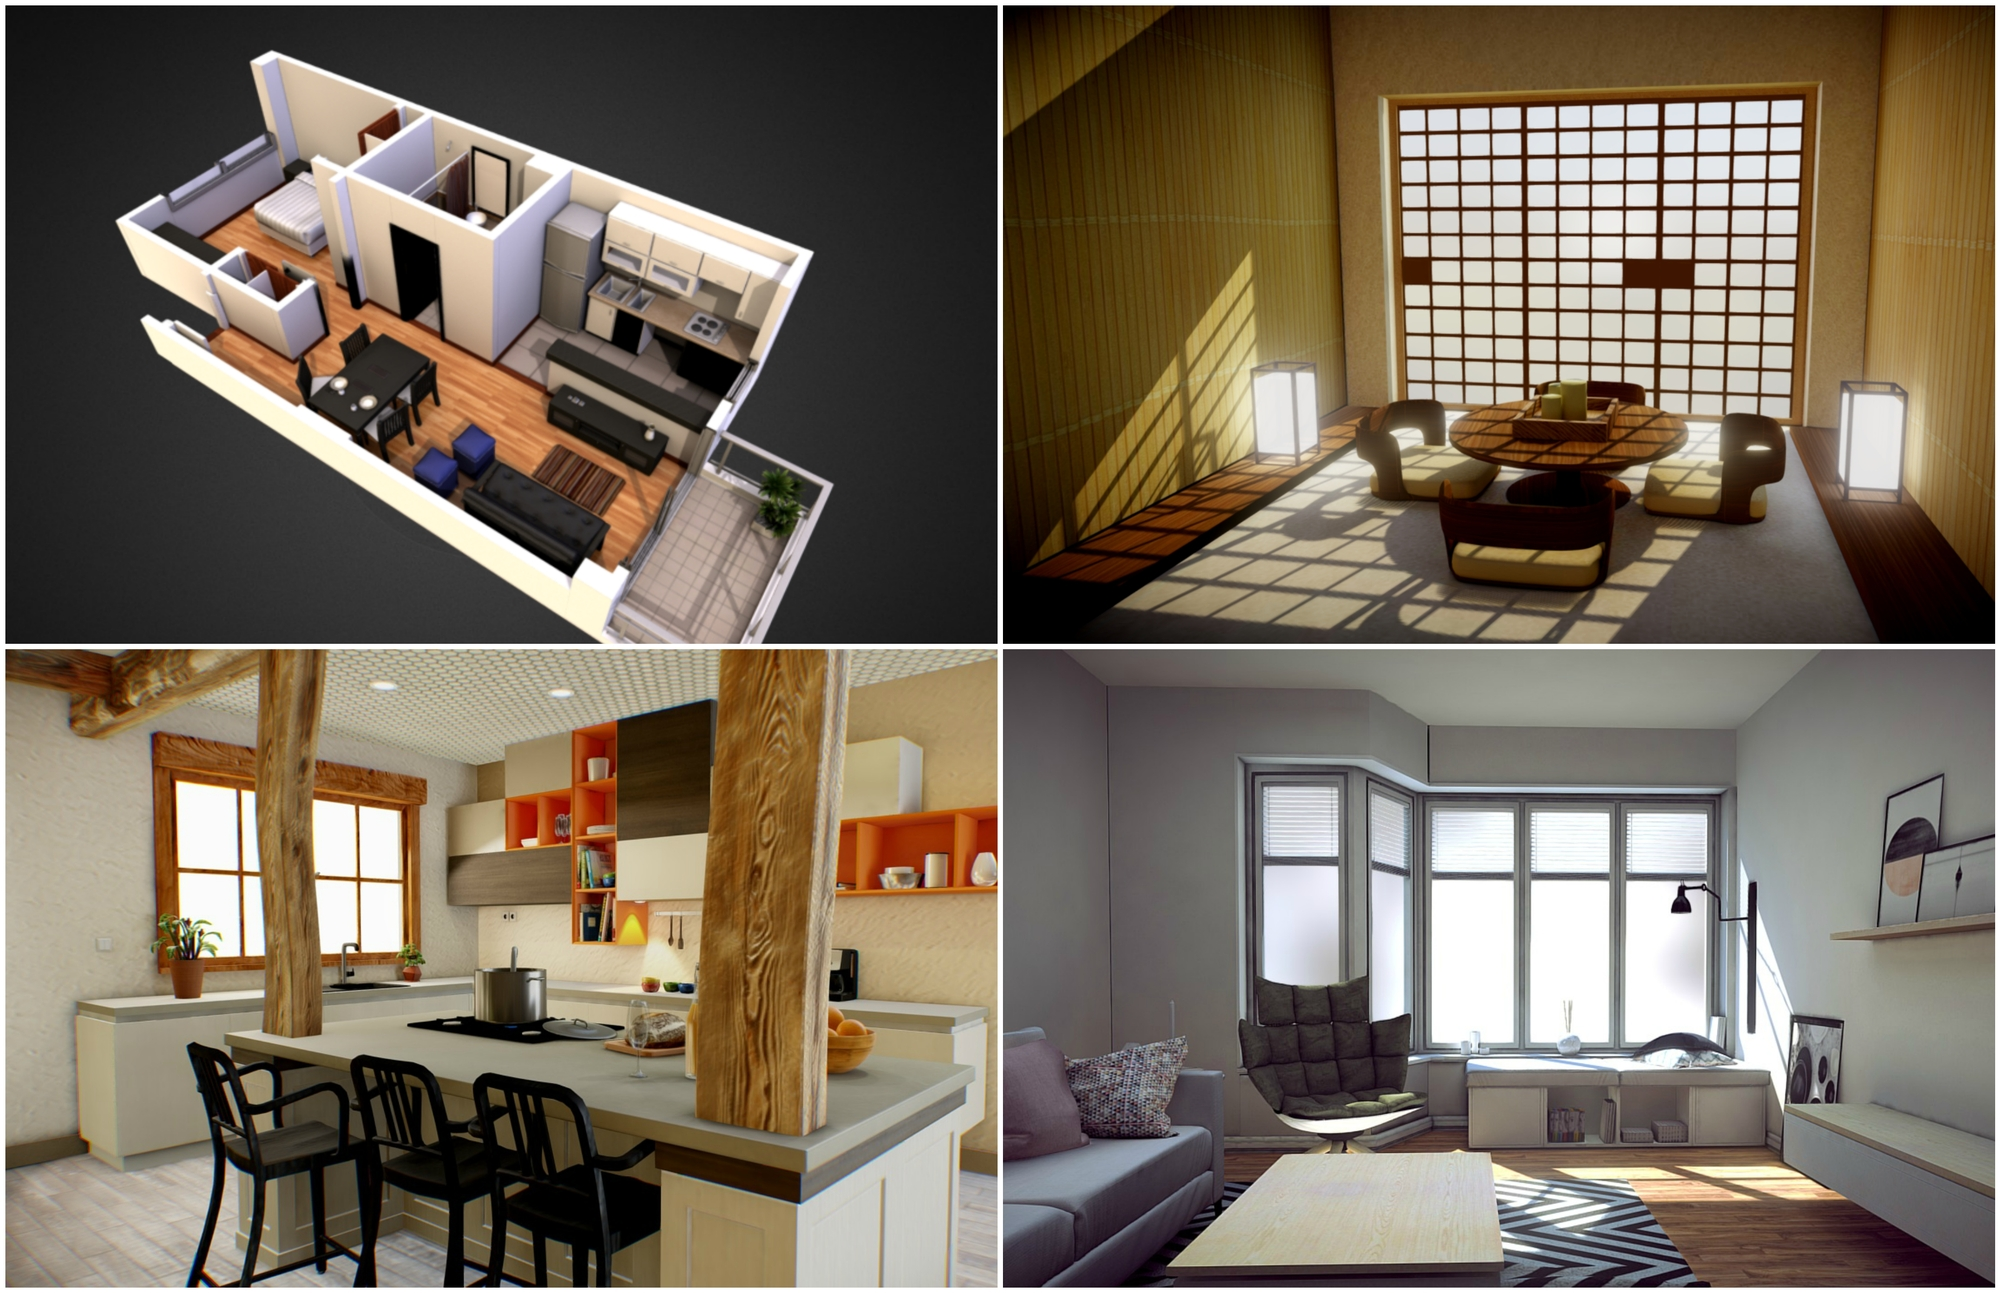 7 examples of how to show off interiors in your 3d models for House interior design event